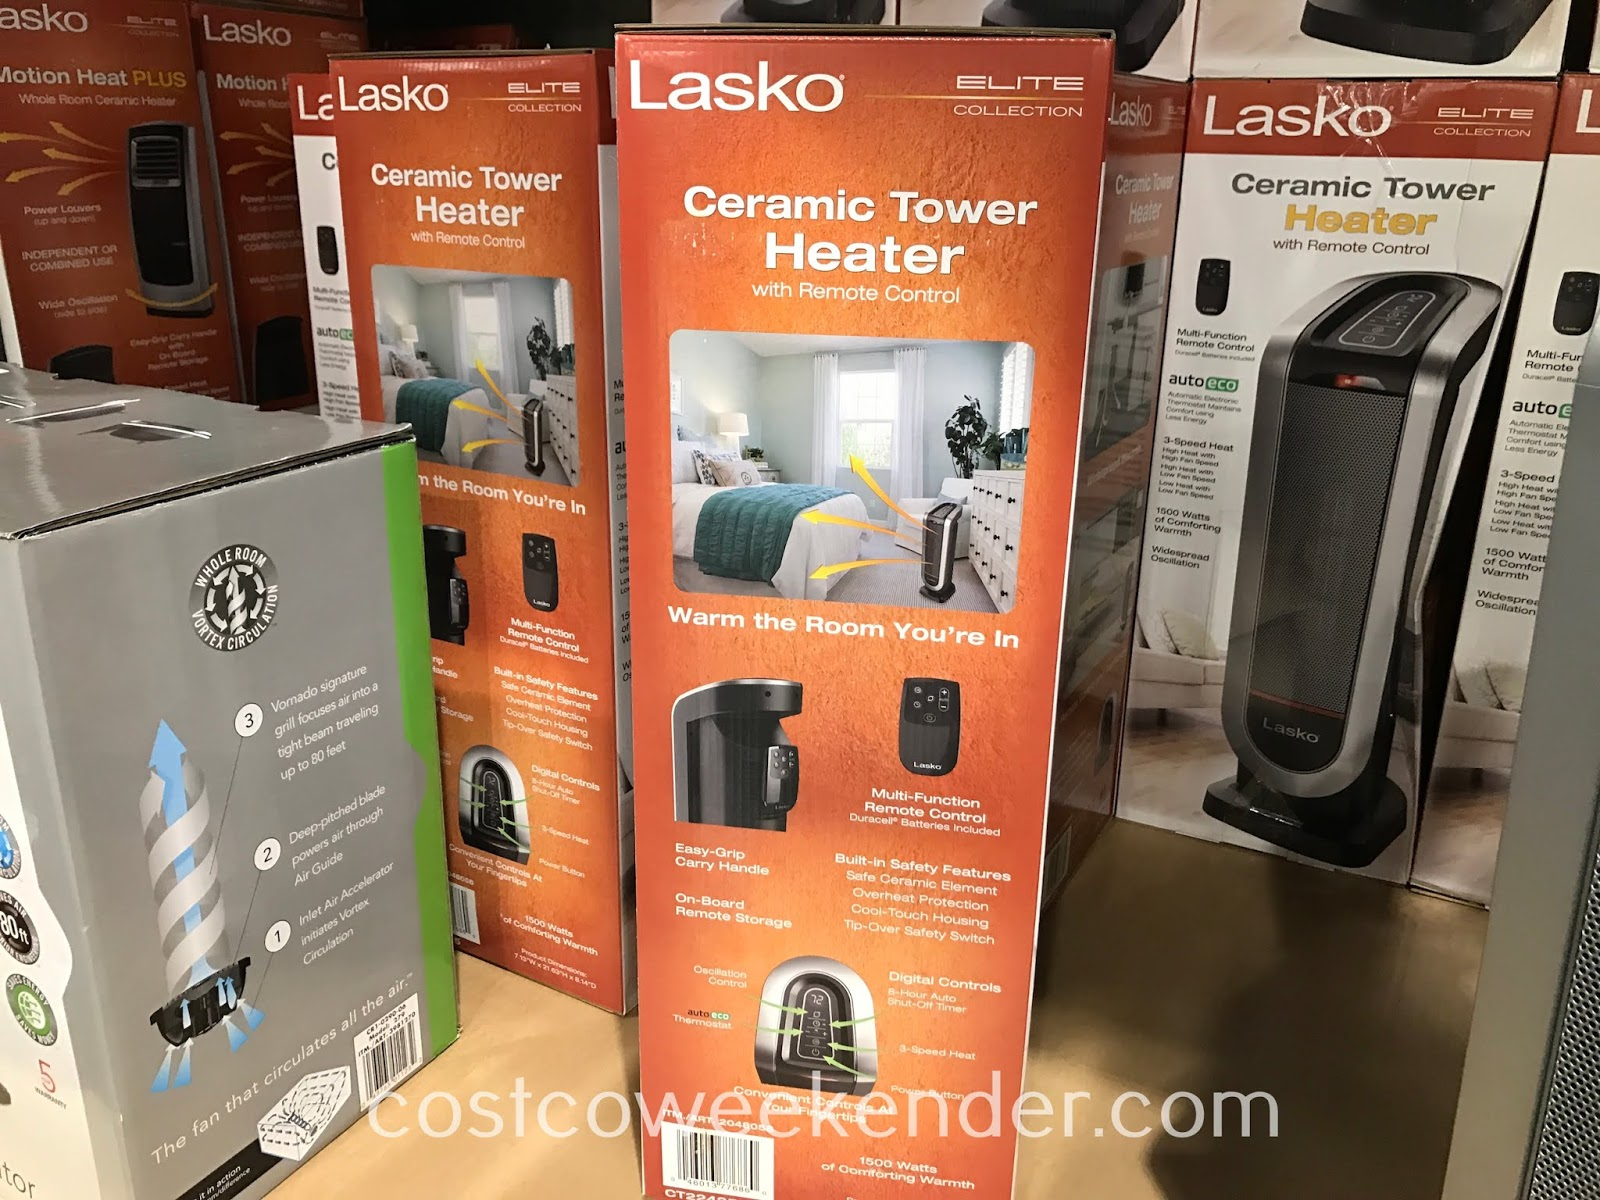 Costco 2048058 - Warm the room you're in with the Lasko Ceramic Tower Heater